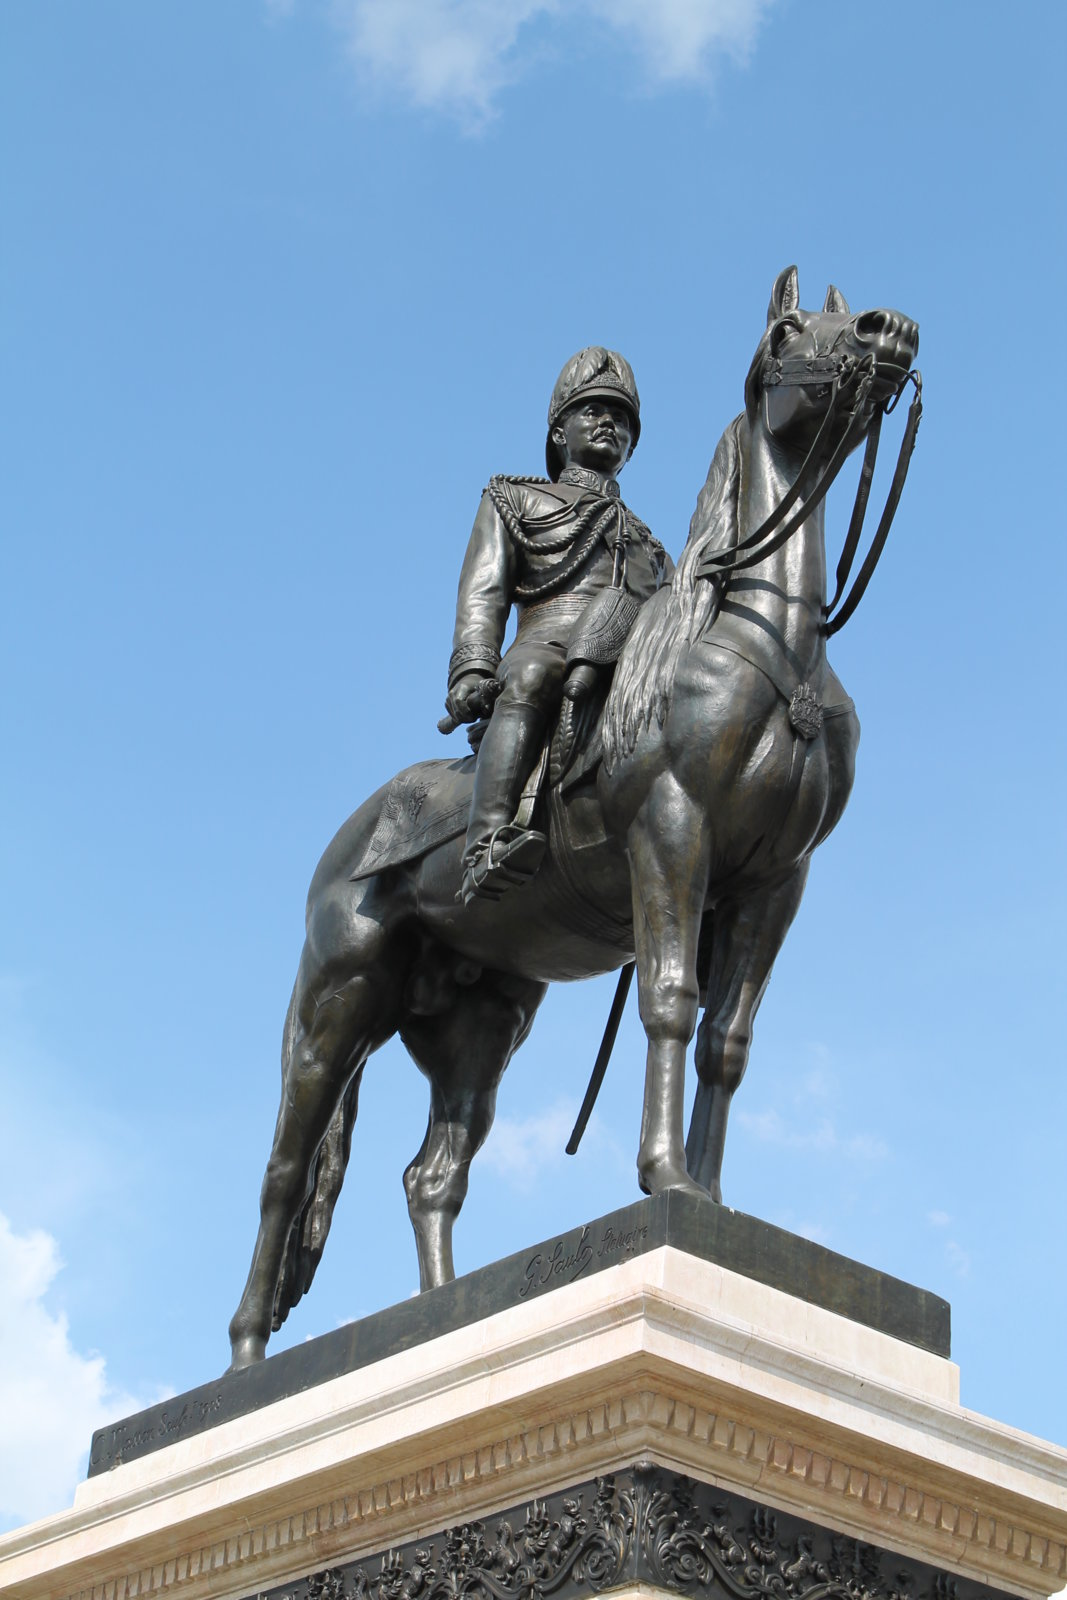 The_Equestrian_Statue_of_King_Chulalongkorn_Rama_V_the_Great.JPG